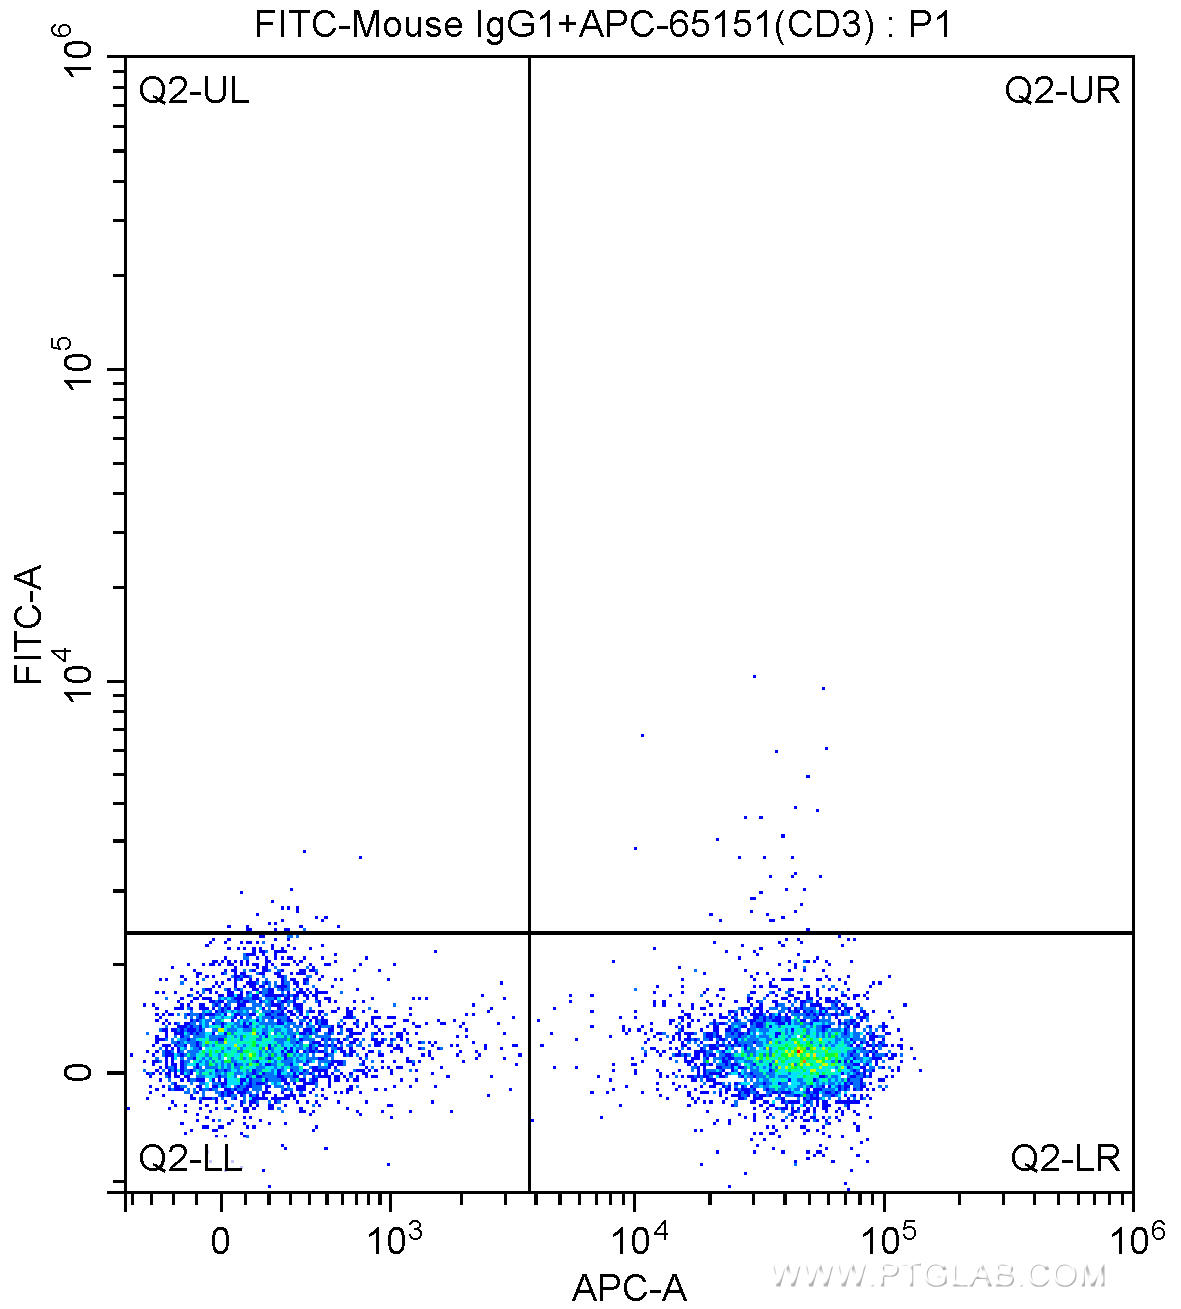 1X10^6 human peripheral blood mononuclear cells (PBMCs) were surface stained with APC Anti-Human CD3 (APC-65151,?clone UCHT1) and FITC mouse IgG1 isotype control antibody. Samples were not fixed.